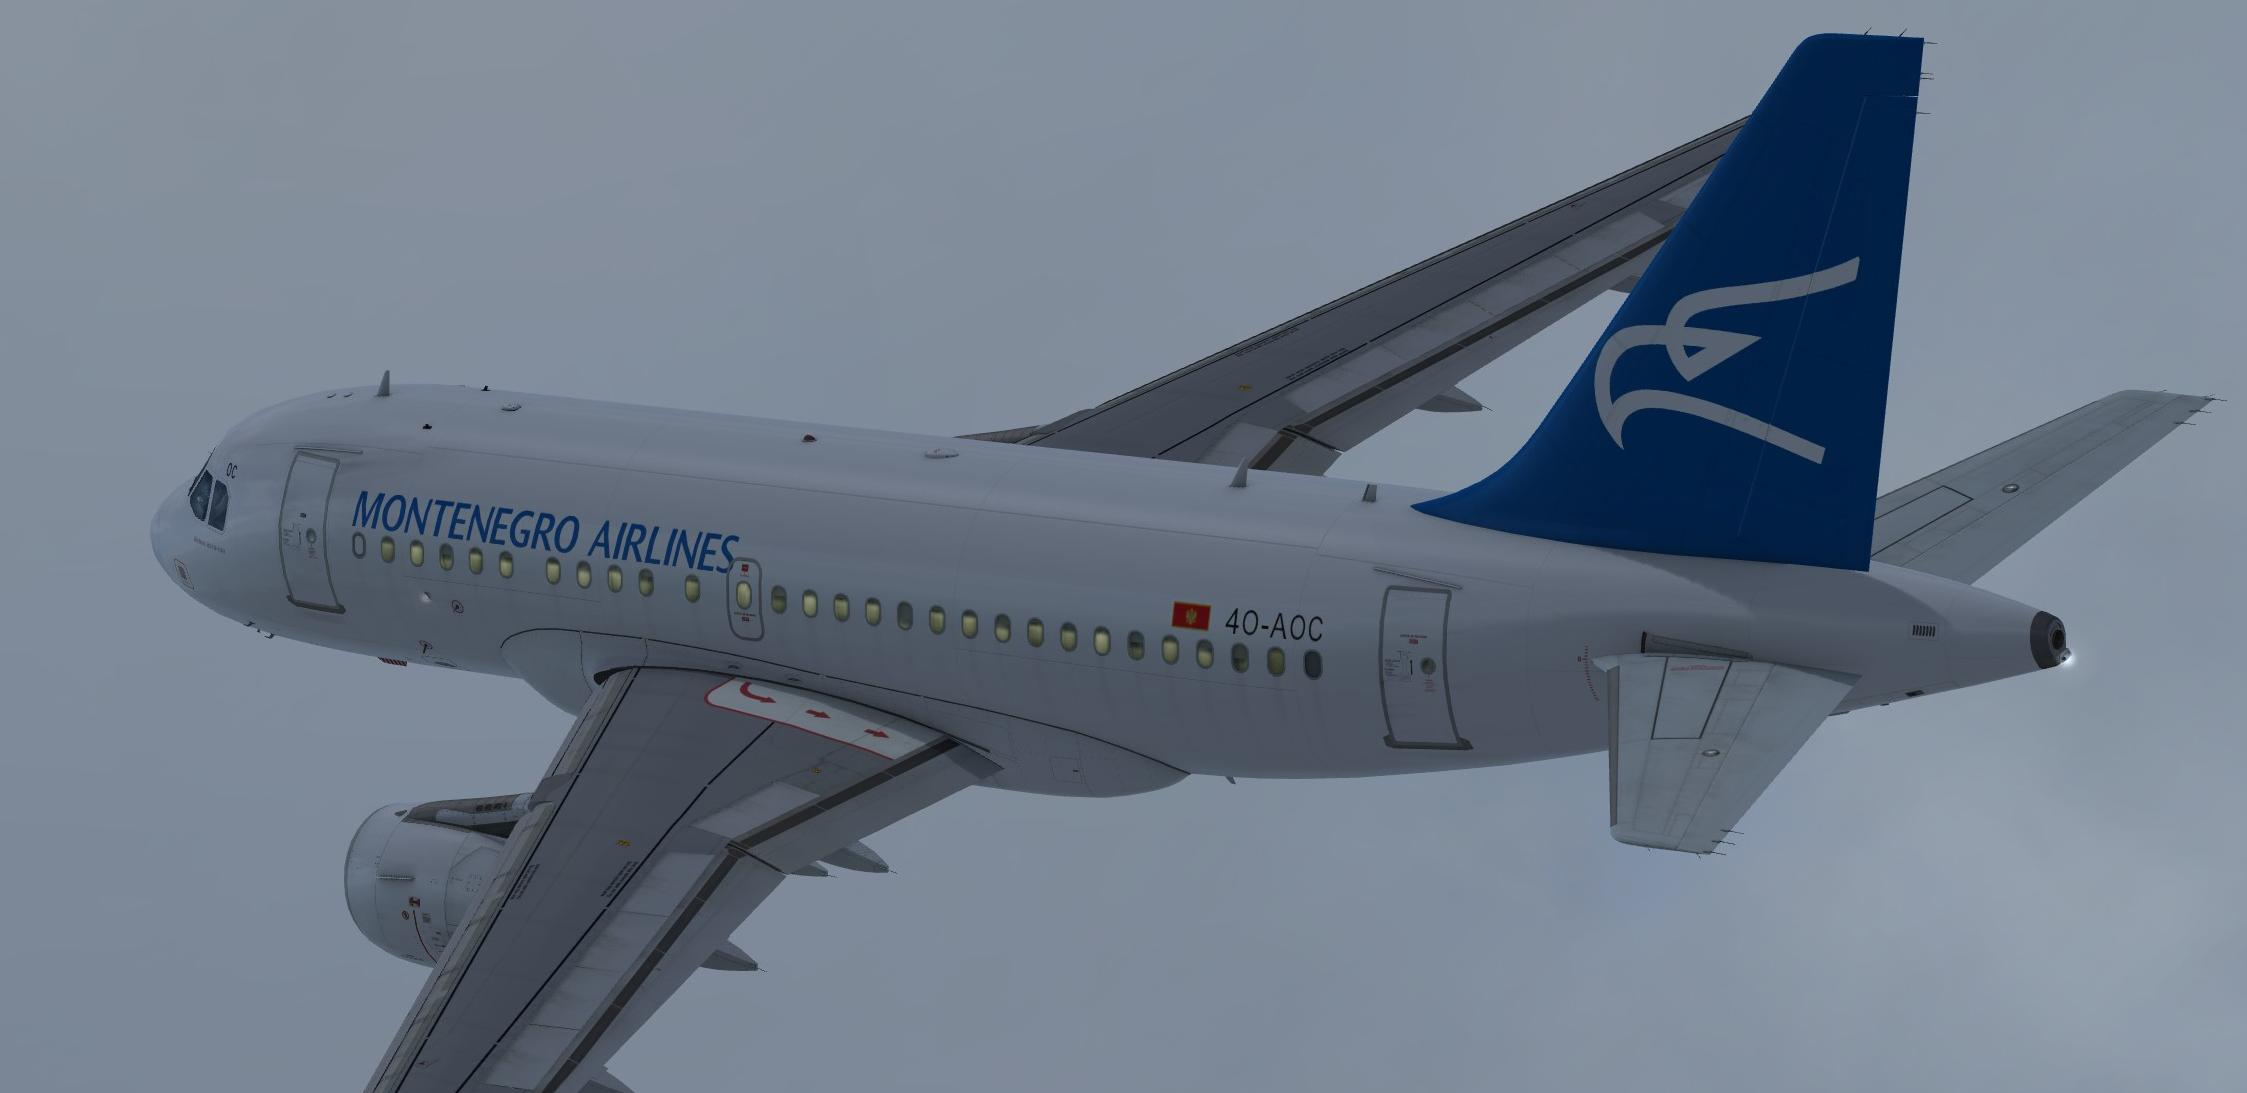 Montenegro Airlines (fictional) Airbus A318-111 CFM